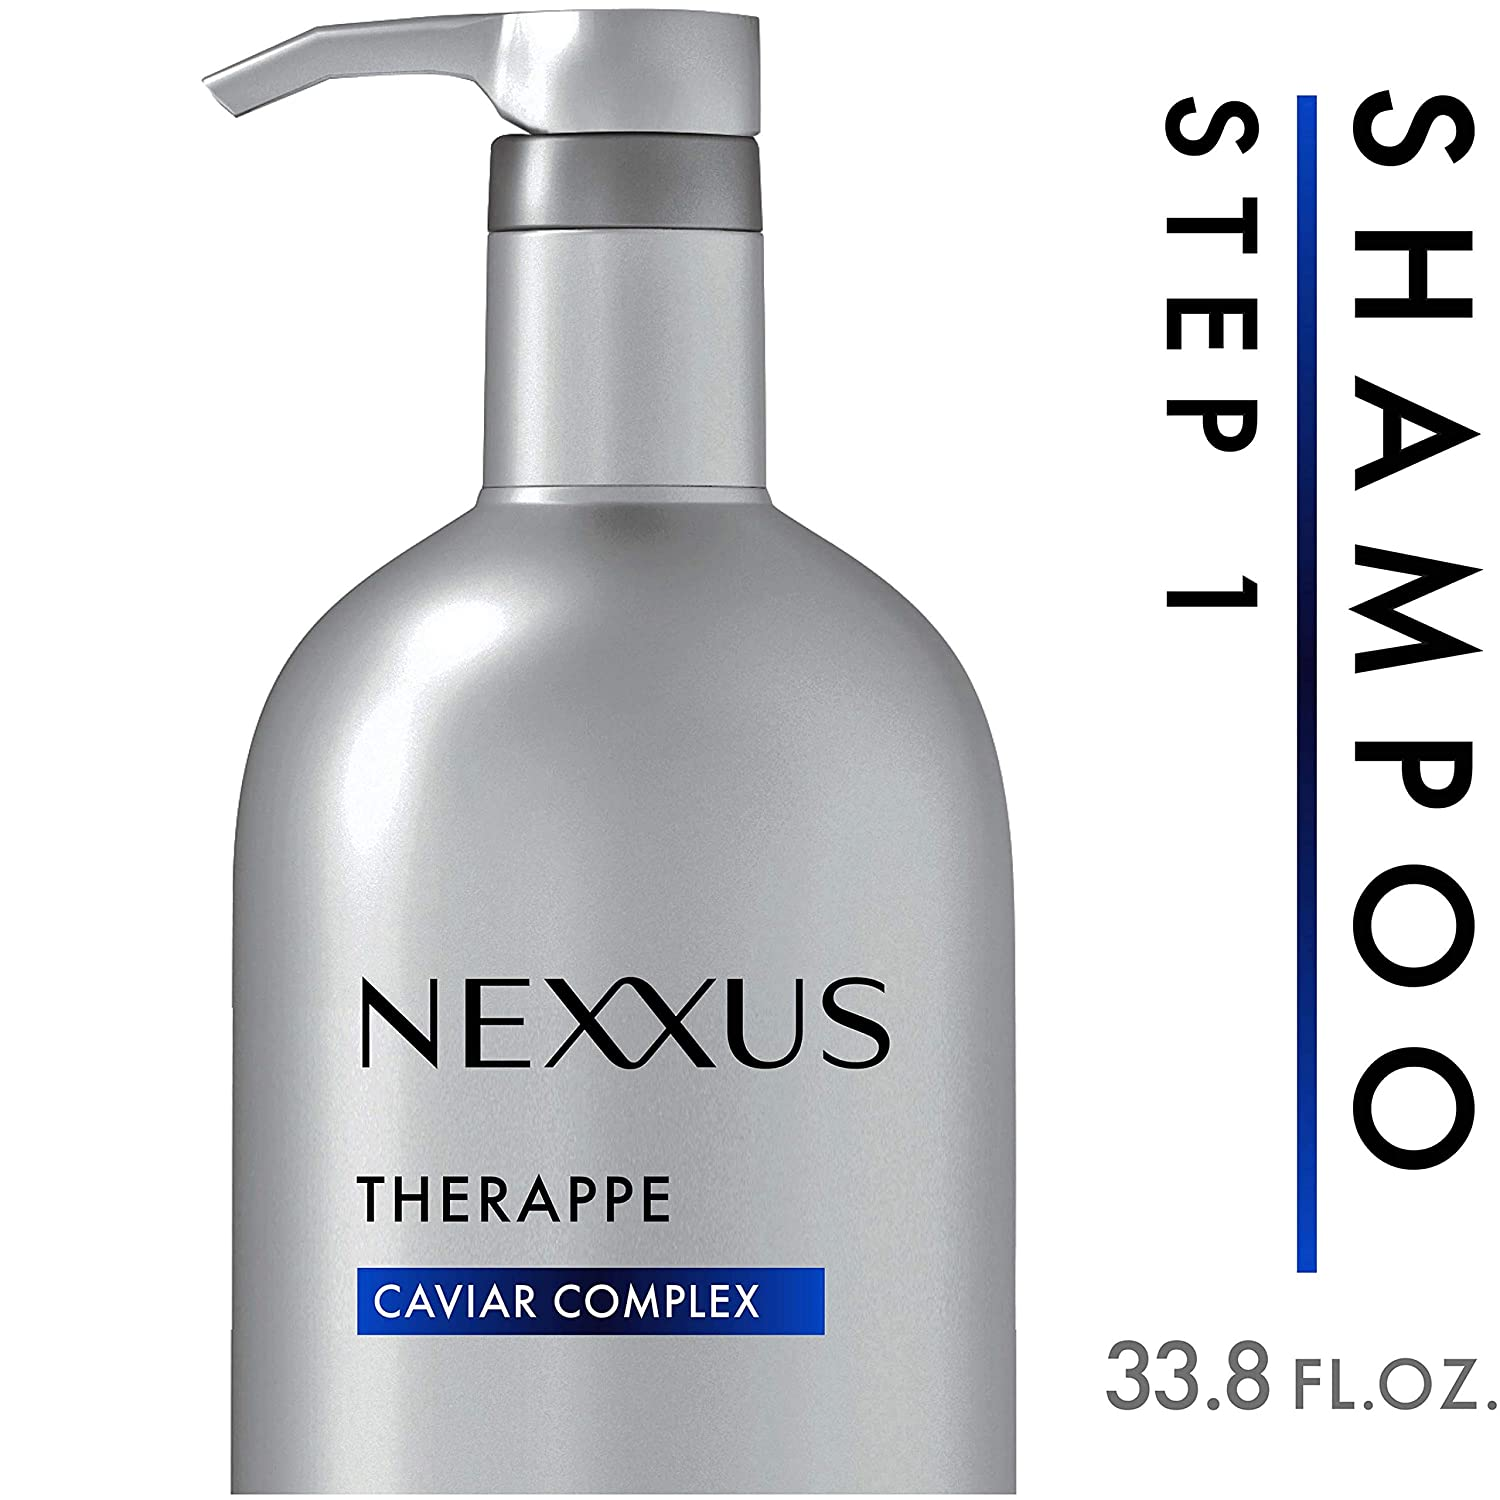 Nexxus Humectress Moisture Conditioner, for Normal to Dry Hair 33.8 oz Unilever NXCH